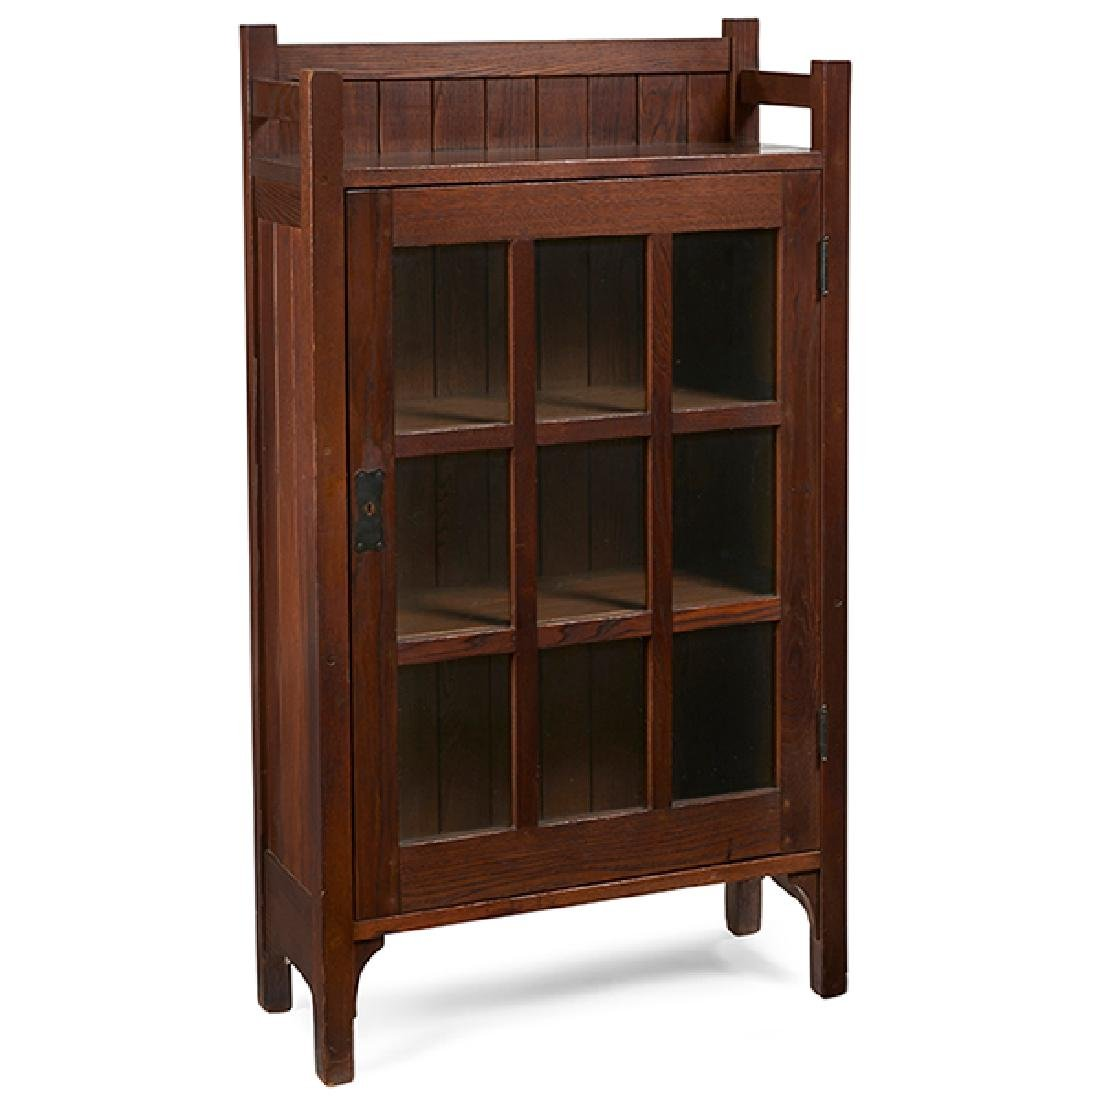 L & JG Stickley from The Onondaga Shops bookcase, #318